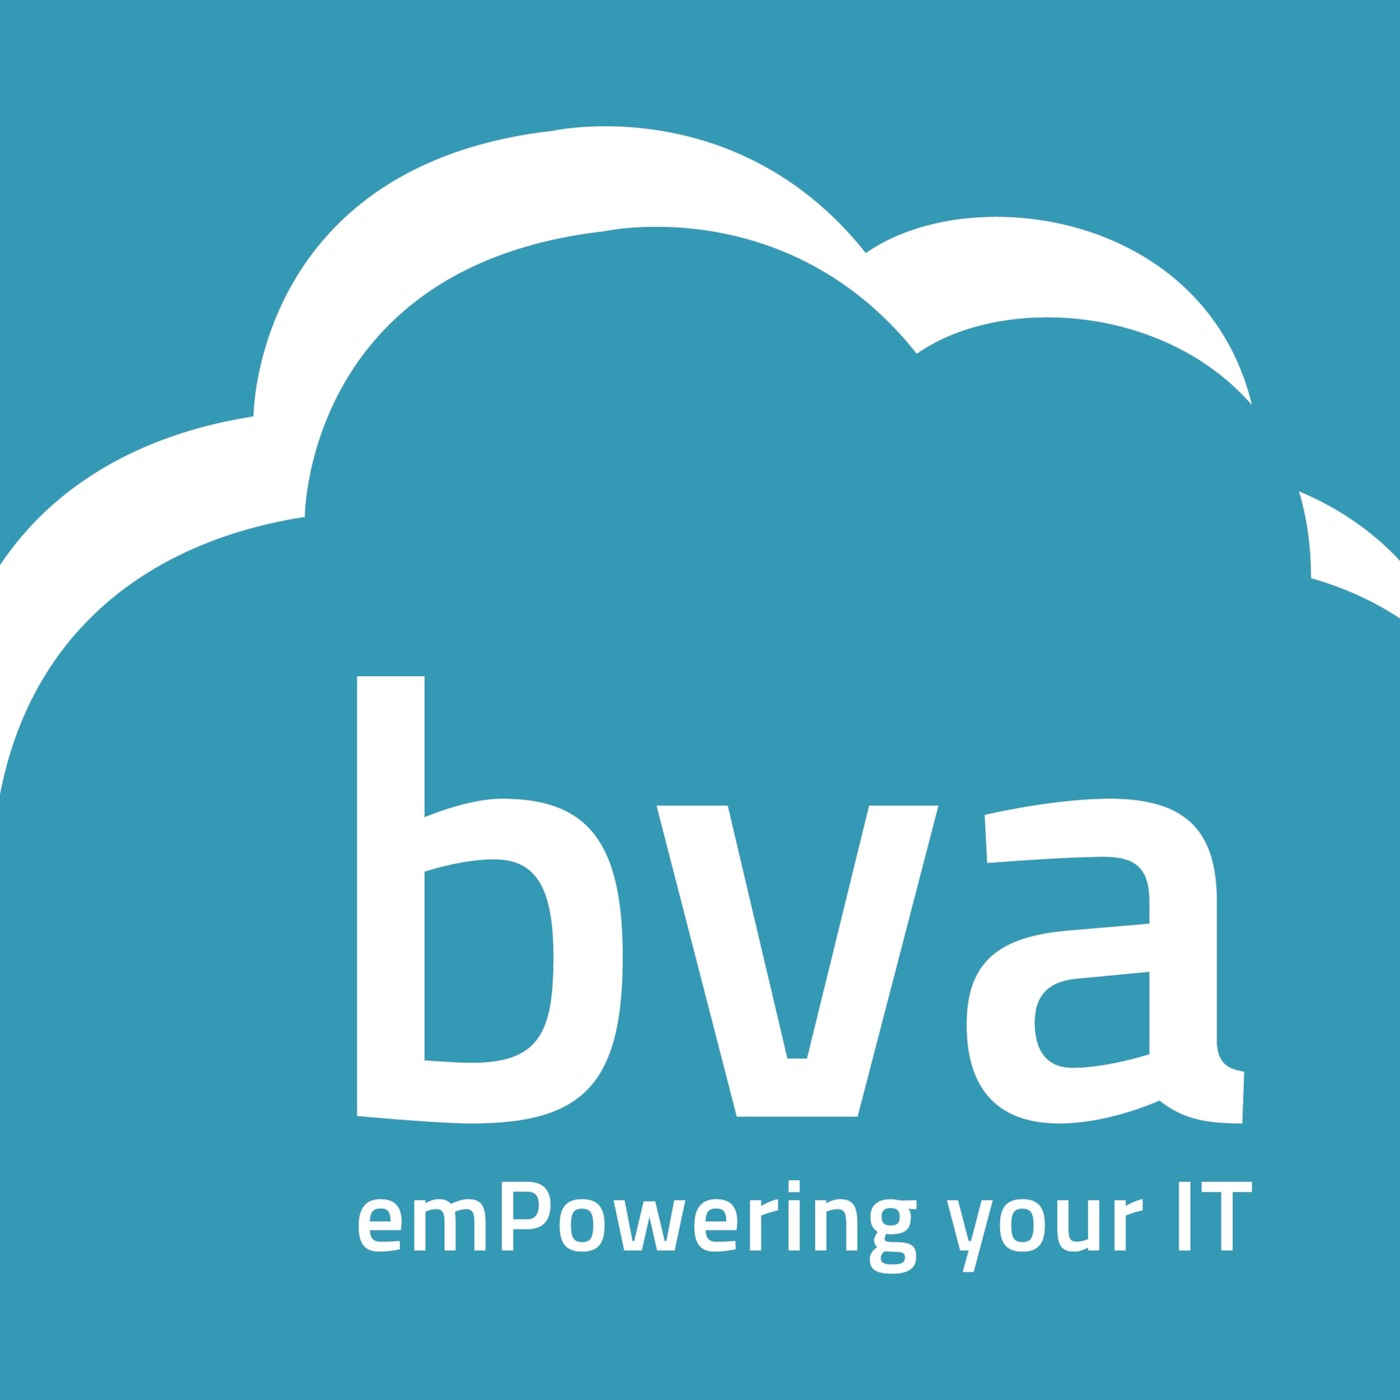 New Outlook Office 365 For Mac Users | BVA INC  emPowering